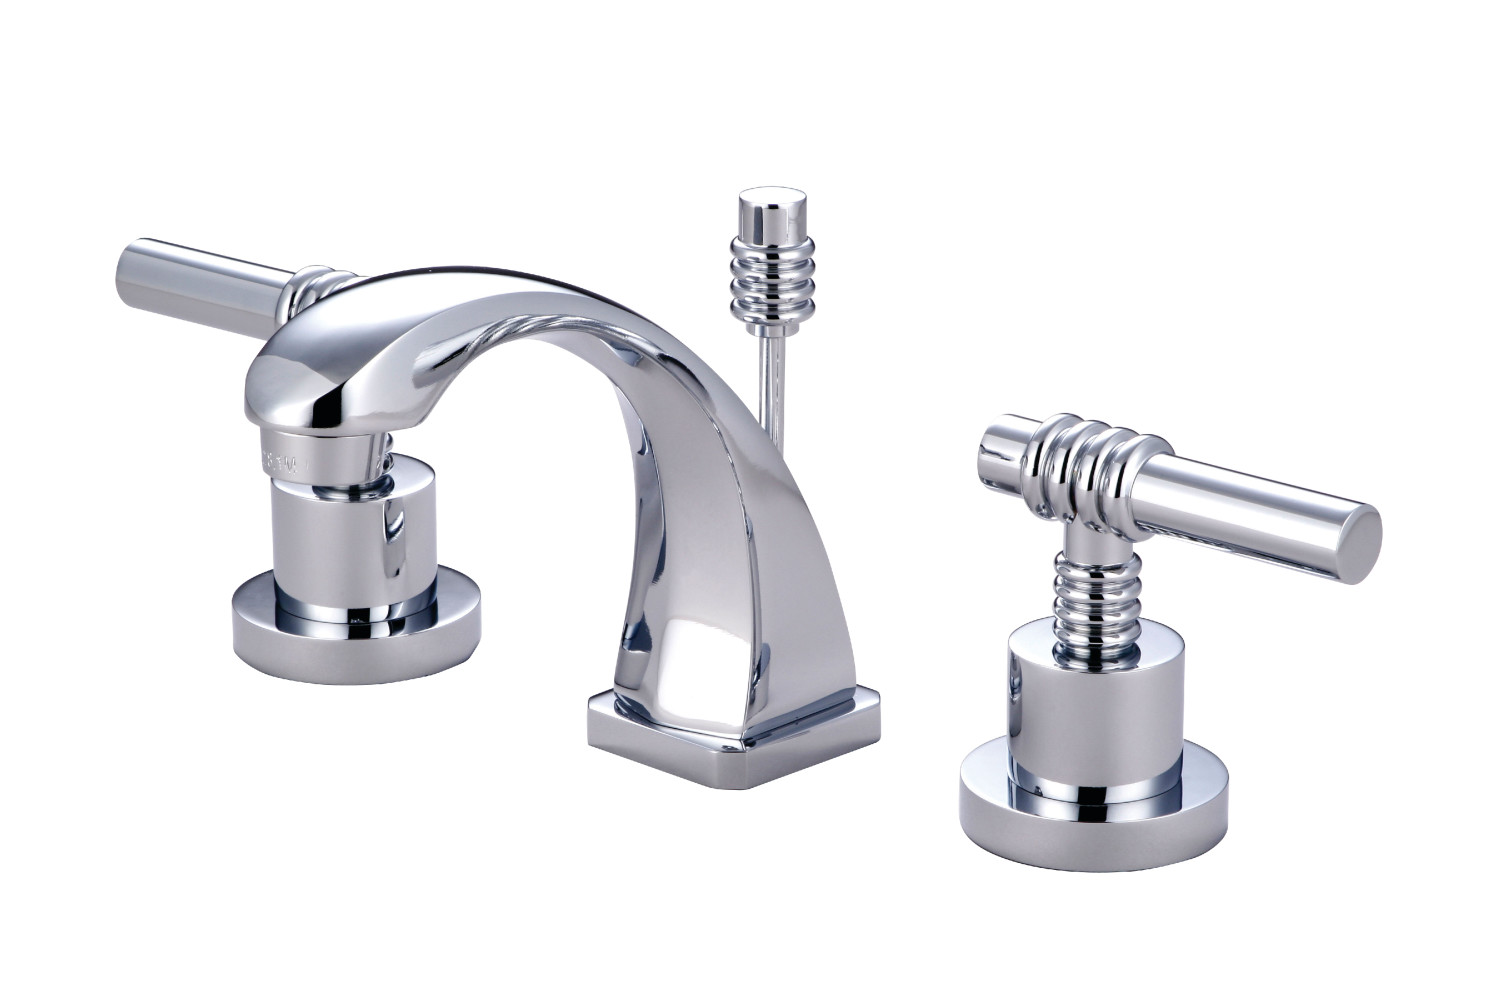 Modern Two-Handle 3-Hole Deck Mounted Widespread Bathroom Faucet in Polished Chrome Finish